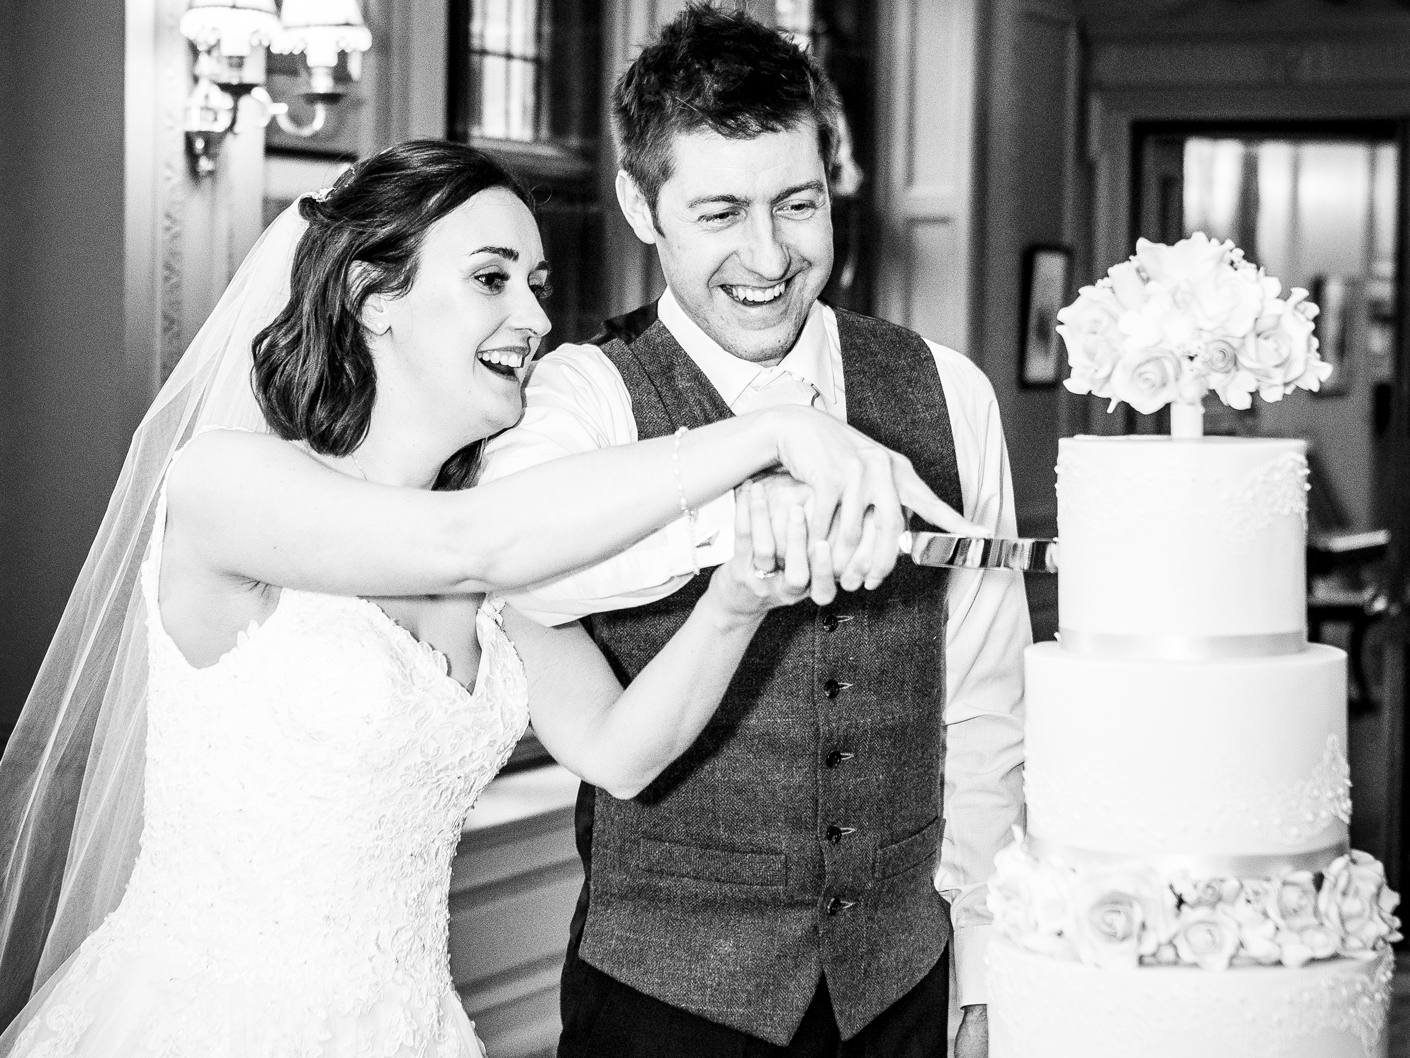 wedding-photography-of-the-cuuting-of-the-cake-at-thornton-manor